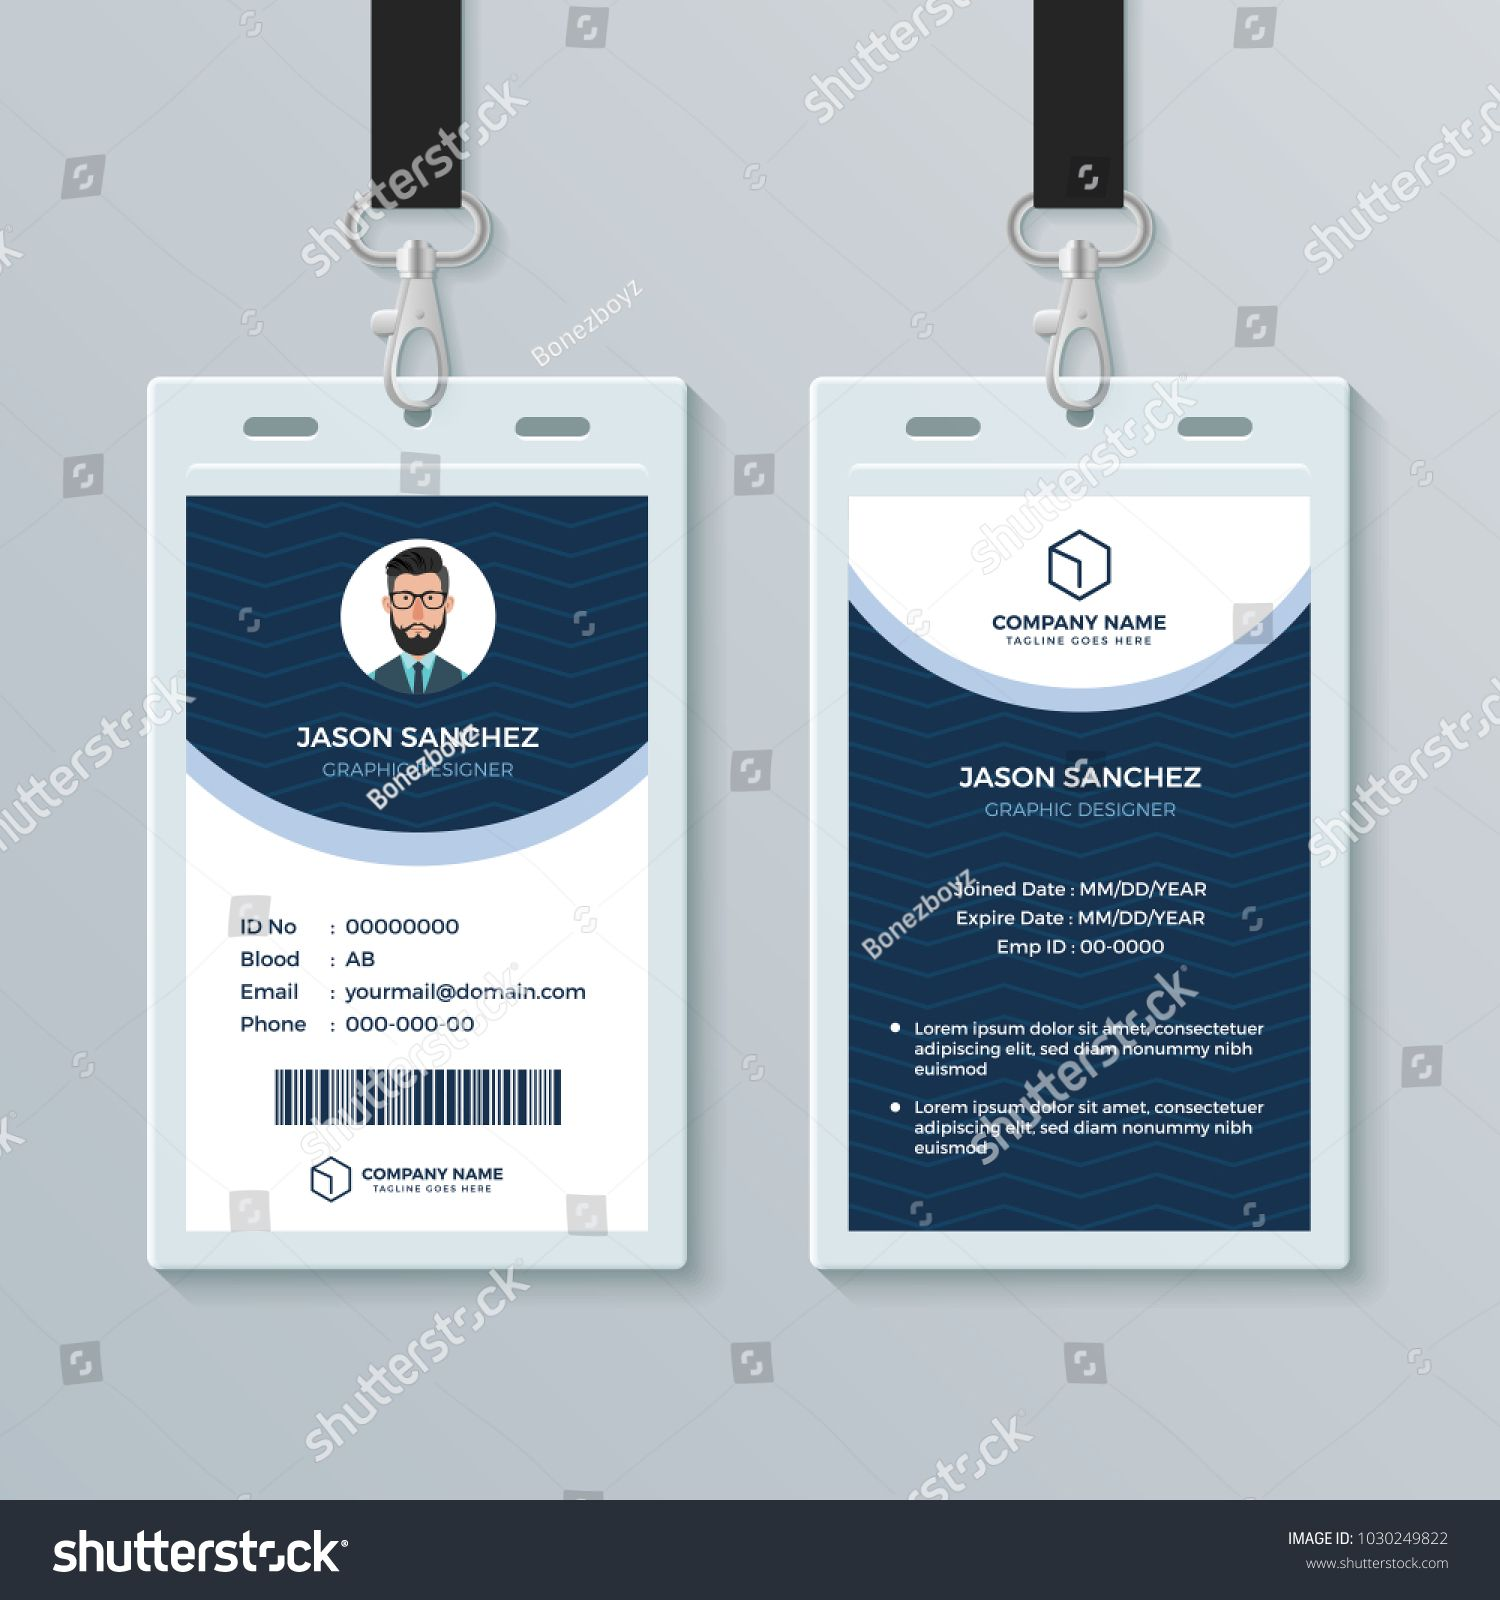 Clean And Modern Employee Id Card Design Template Employee Modern Clean Id In 2020 Employee Id Card Id Card Template Card Design